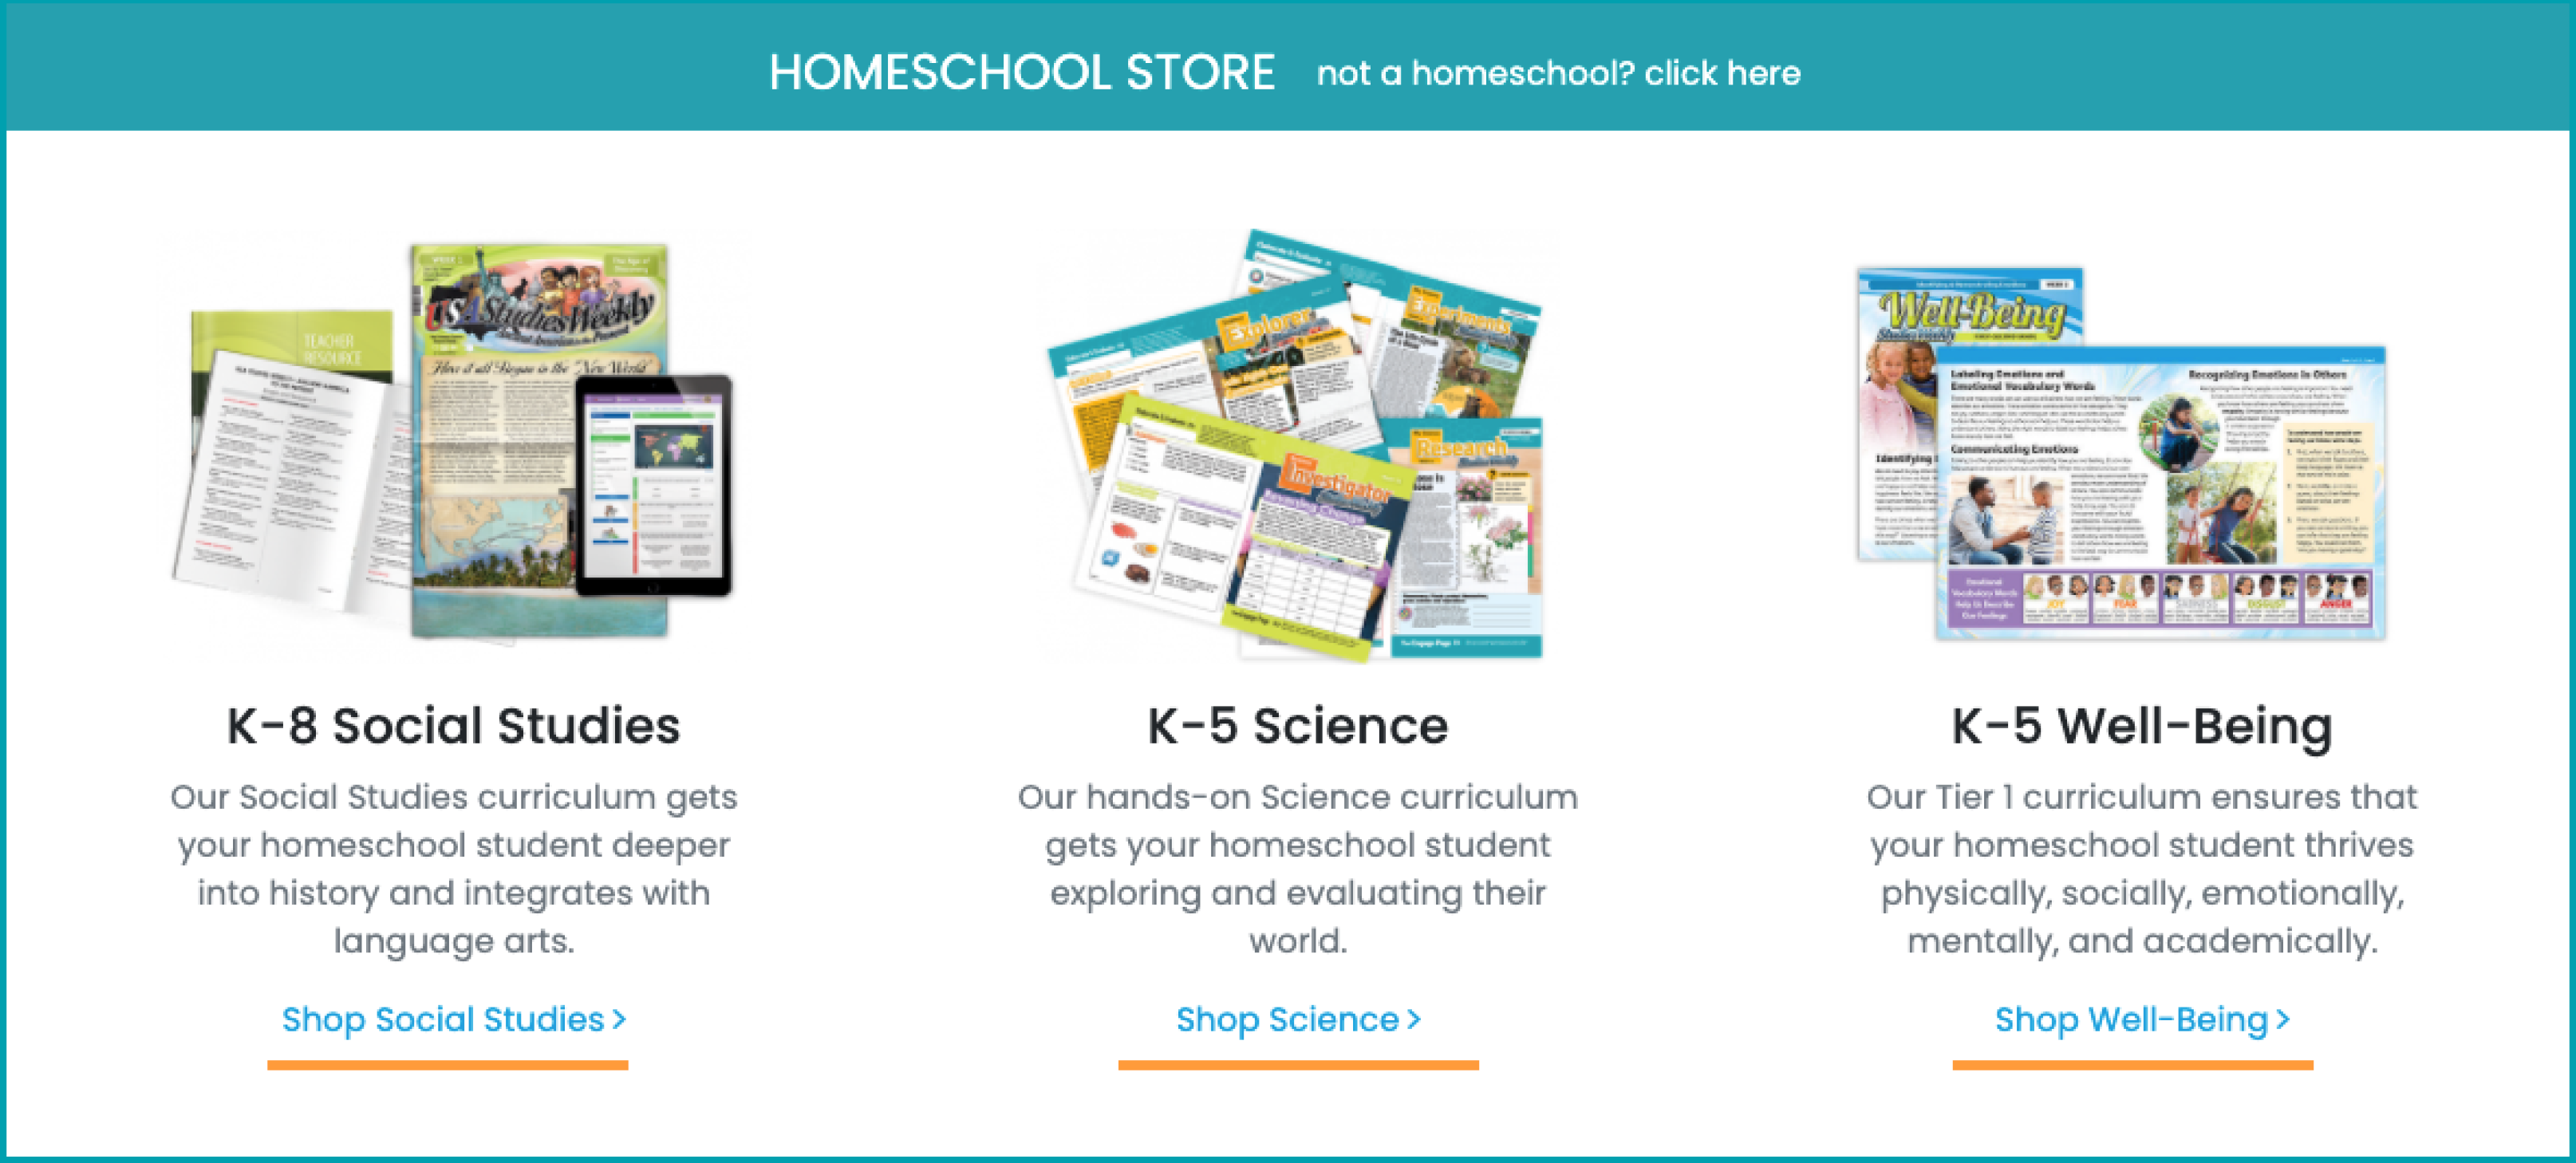 Store-Homeschool-Step-2a-2021.png